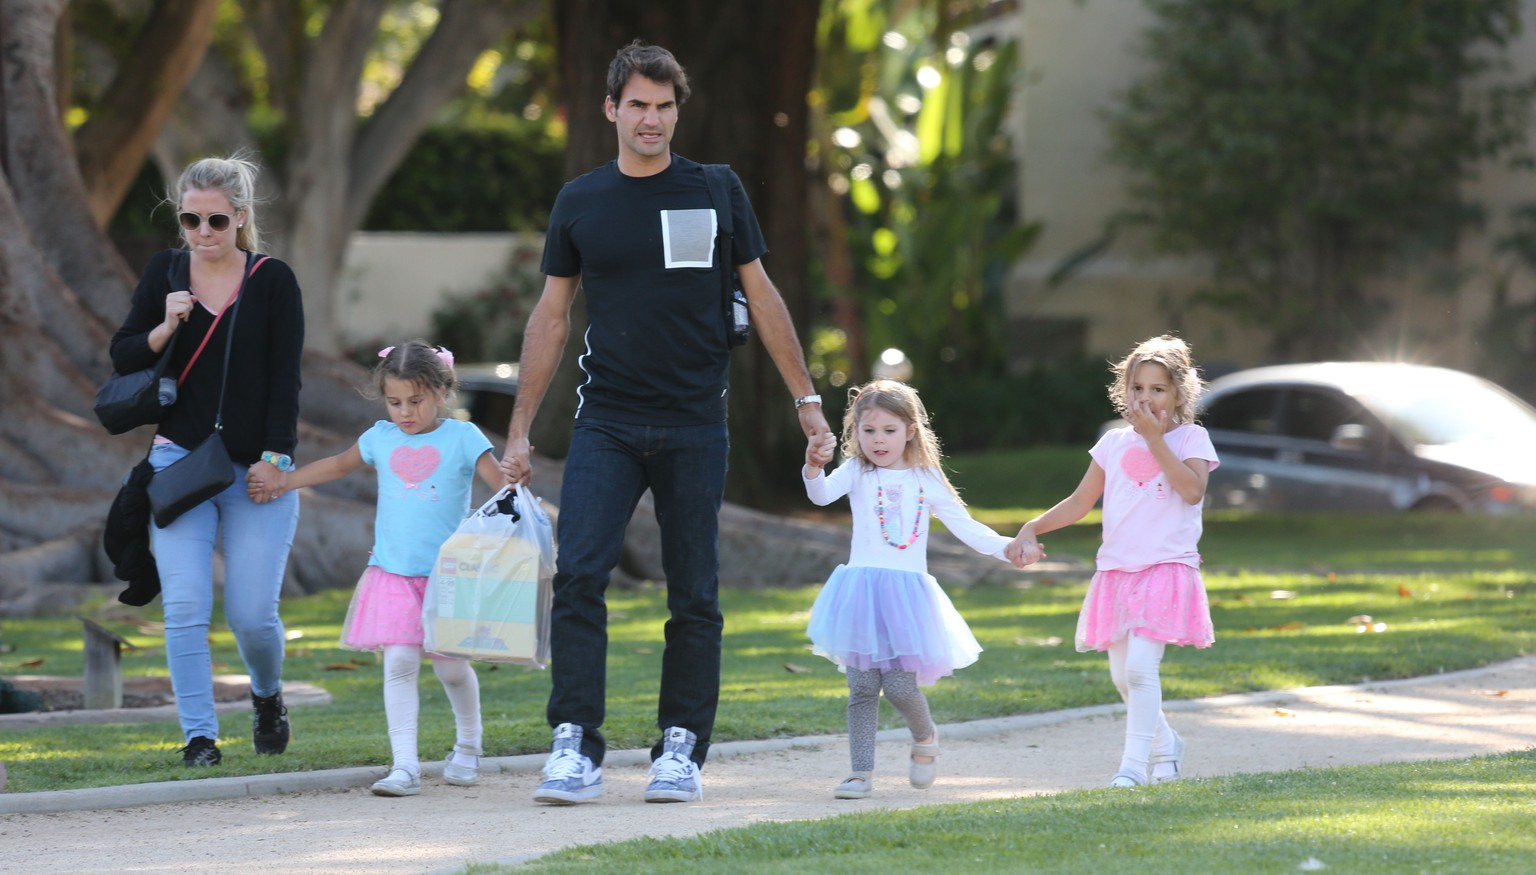 <H2>Please contact X17 before any use of these exclusive photos - x17@x17agency.com</H2>